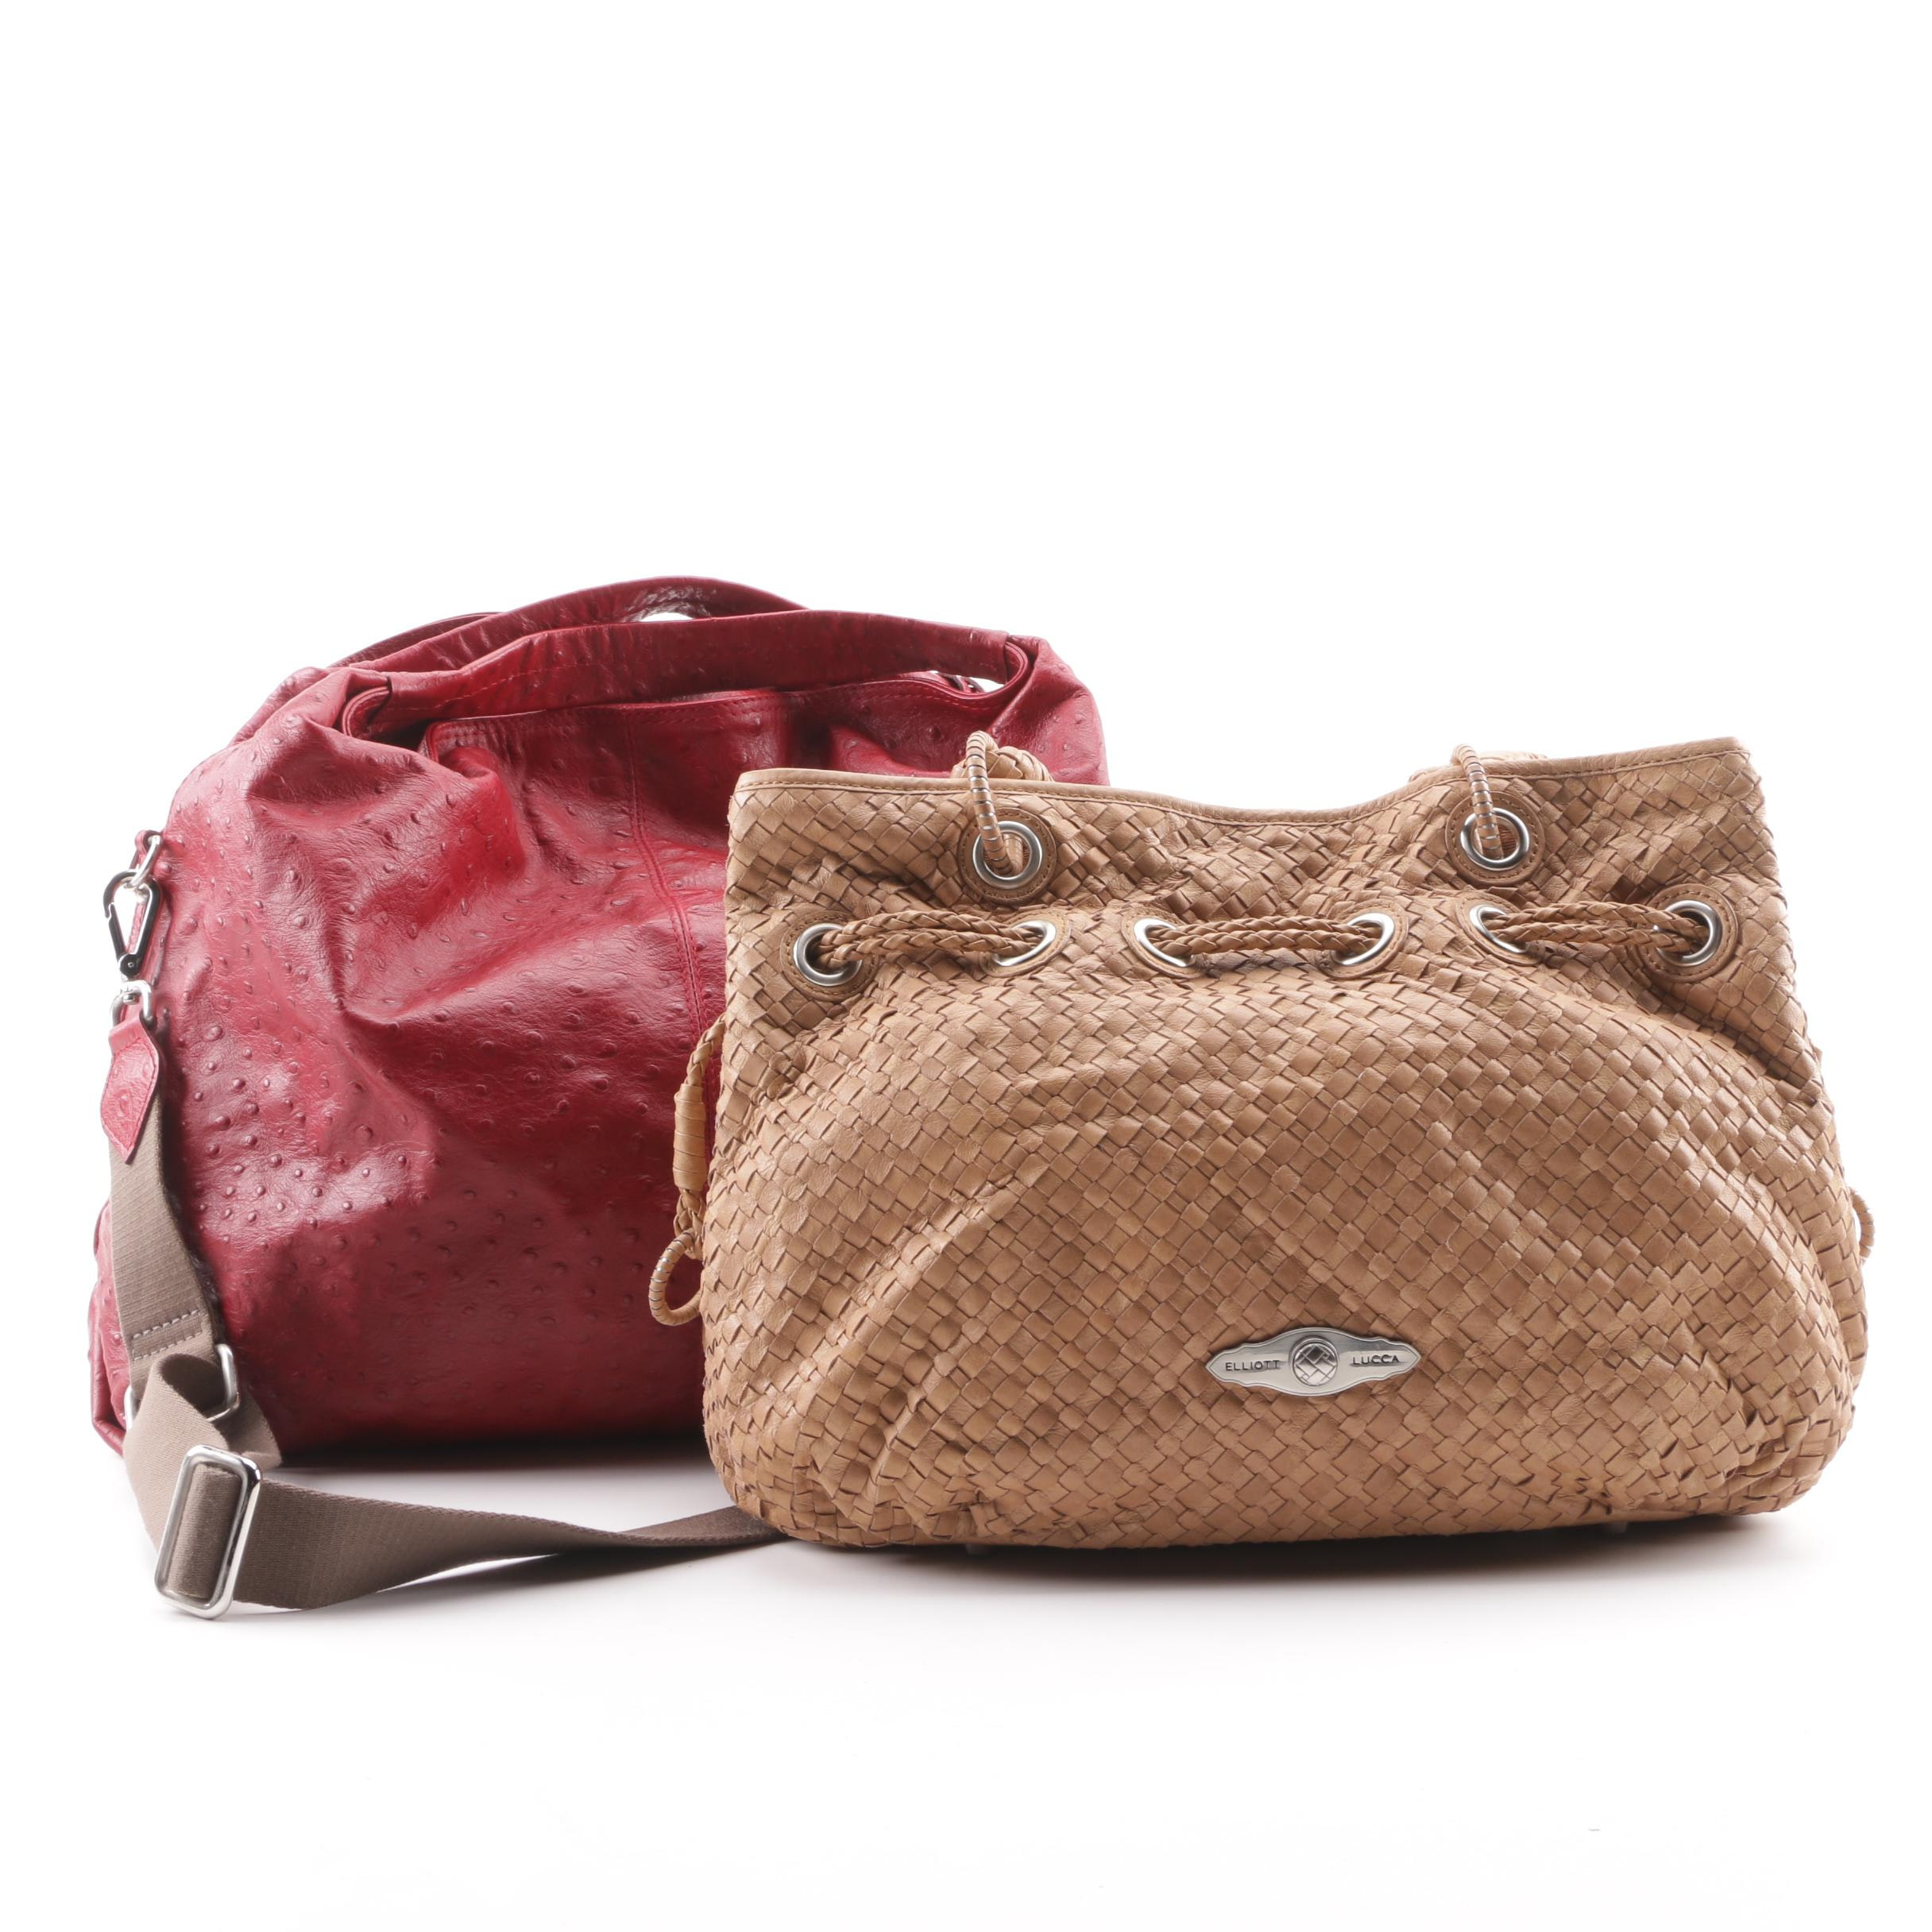 Elliott Lucca Woven Leather Bag and Furla Ostrich Embossed Hobo Bag